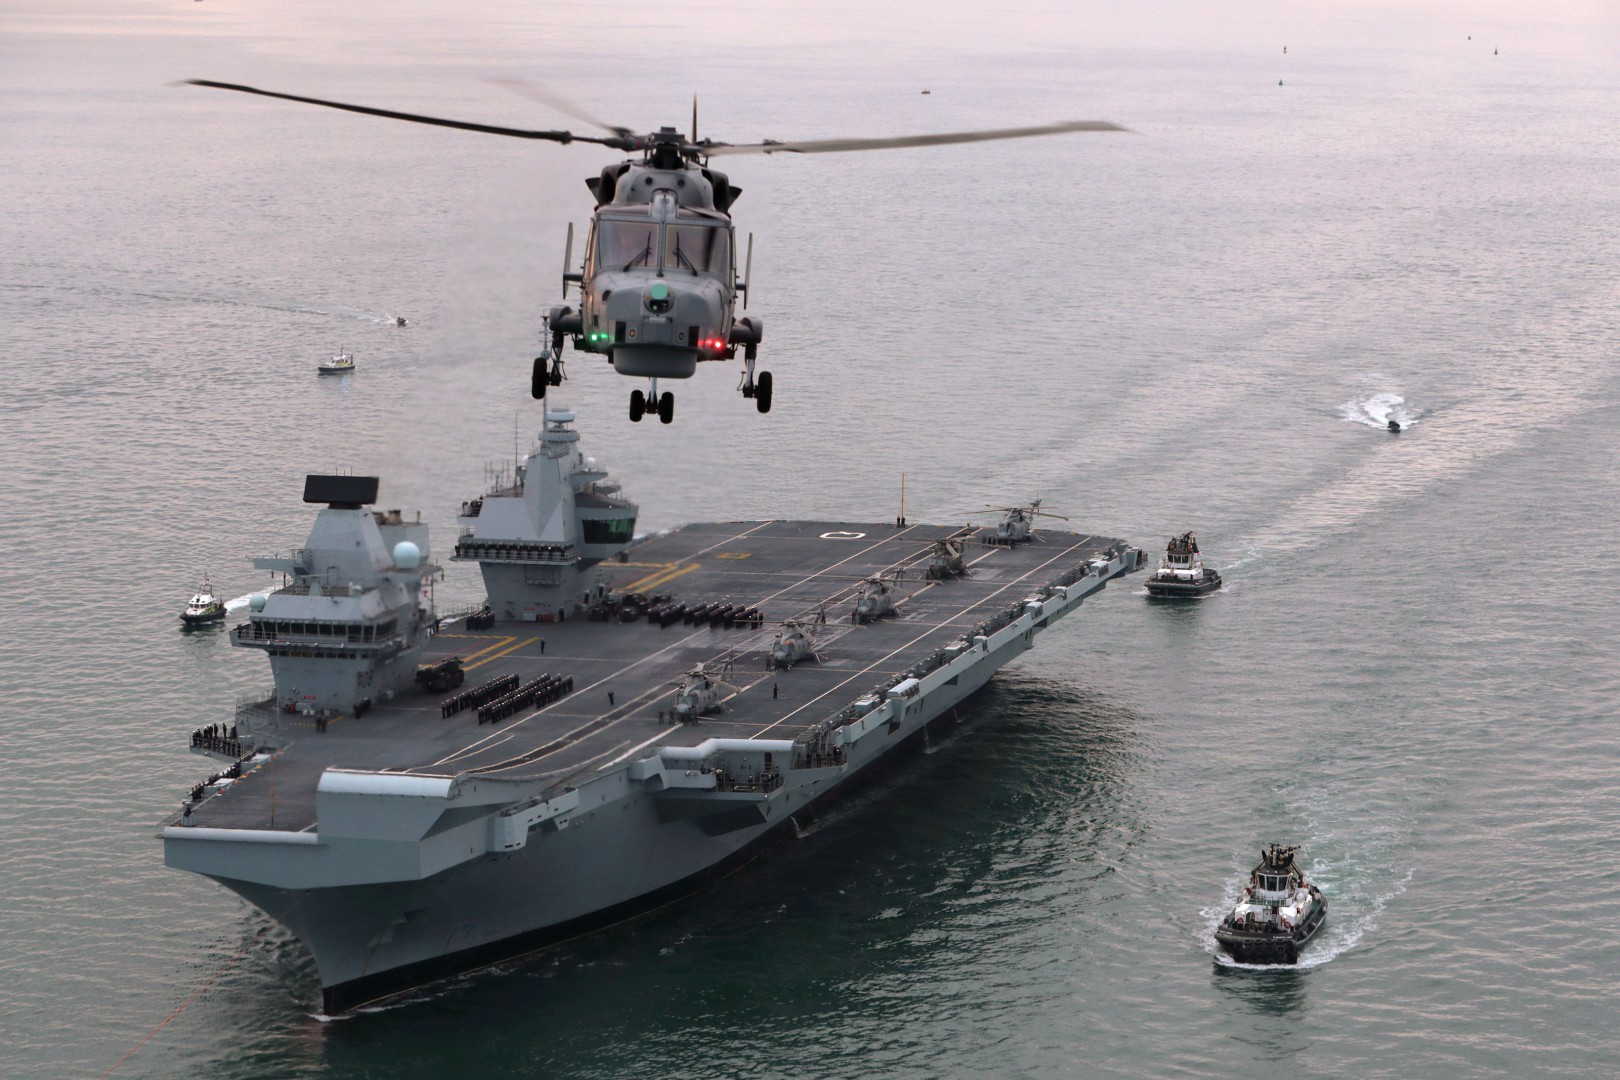 Royal Navy handout photo of HMS Queen Elizabeth, the UK's newest aircraft carrier, arriving in Portsmouth. PRESS ASSOCIATION Photo. Picture date: Wednesday August 16, 2017. The 65,000-tonne carrier, the largest warship ever to be built in Britain, is expected to be the Navy's flagship for at least 50 years. See PA story DEFENCE Carrier. Photo credit should read: LPhot Dan Rosenbaum/Royal Navy/PA Wire  NOTE TO EDITORS: This handout photo may only be used in for editorial reporting purposes for the contemporaneous illustration of events, things or the people in the image or facts mentioned in the caption. Reuse of the picture may require further permission from the copyright holder.  LaPresse Only italy Roger Waters alla manifestazione anti-trust a New York   061830